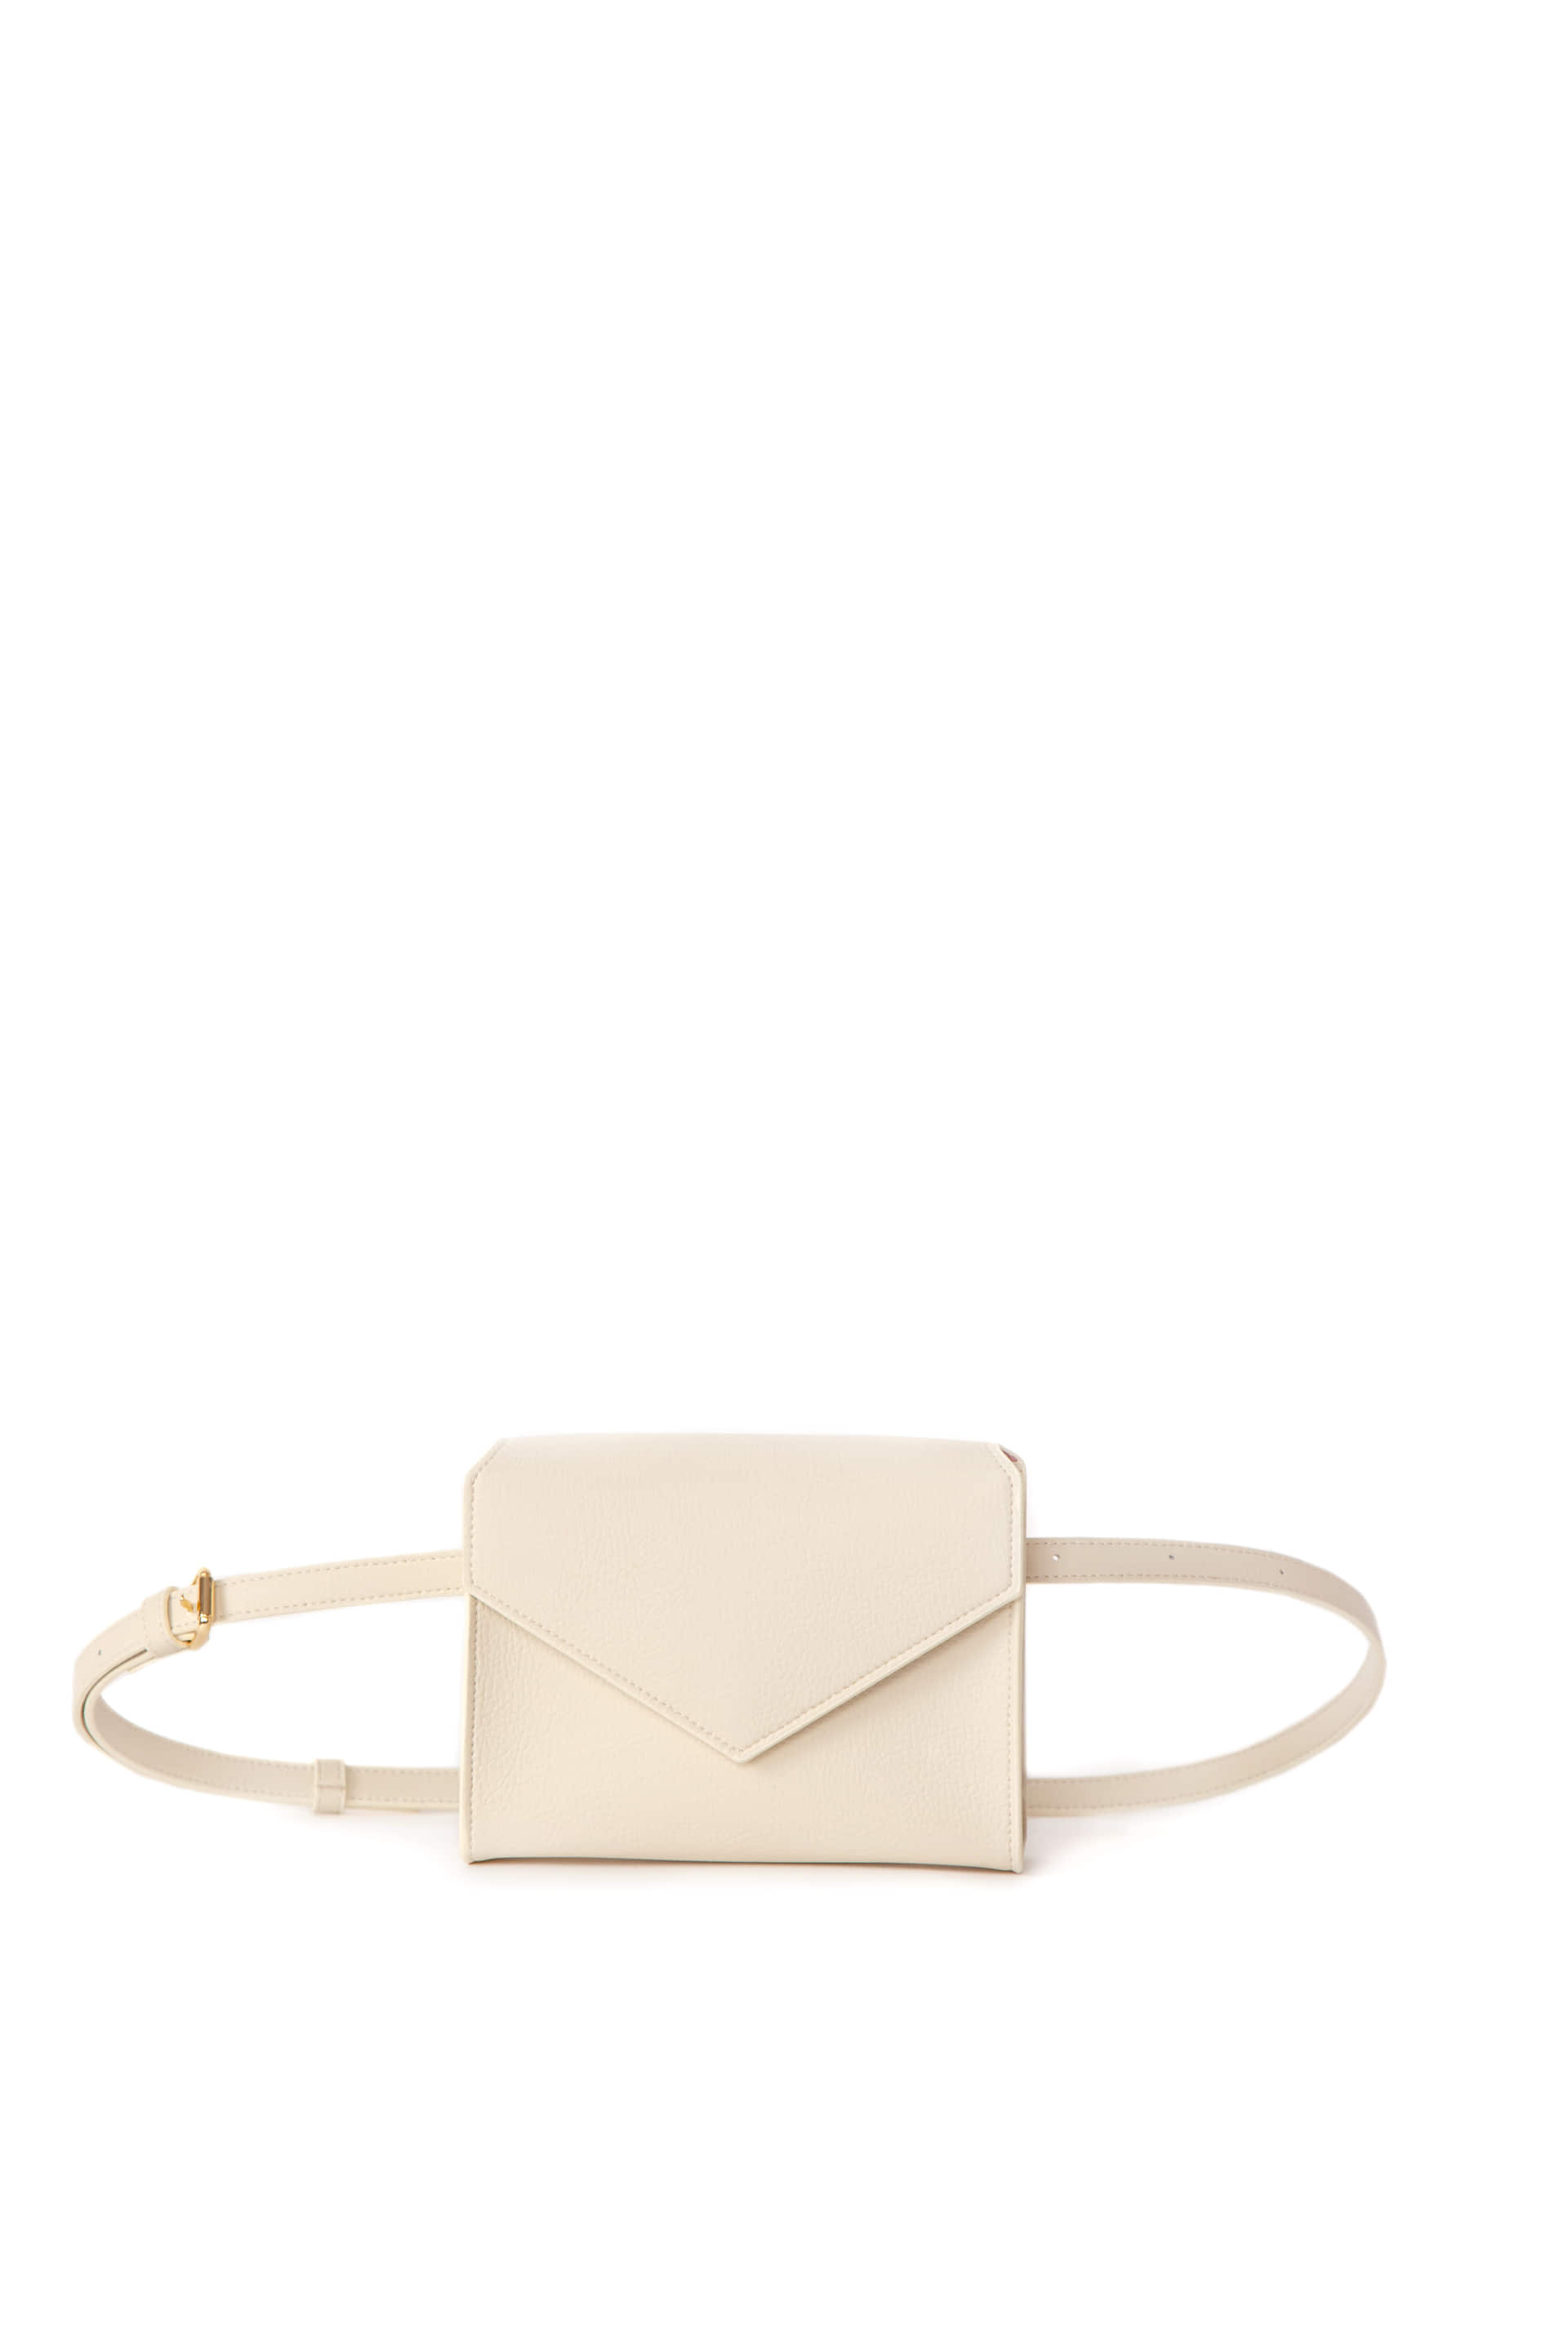 4-way BELT BAG 25 Ivory